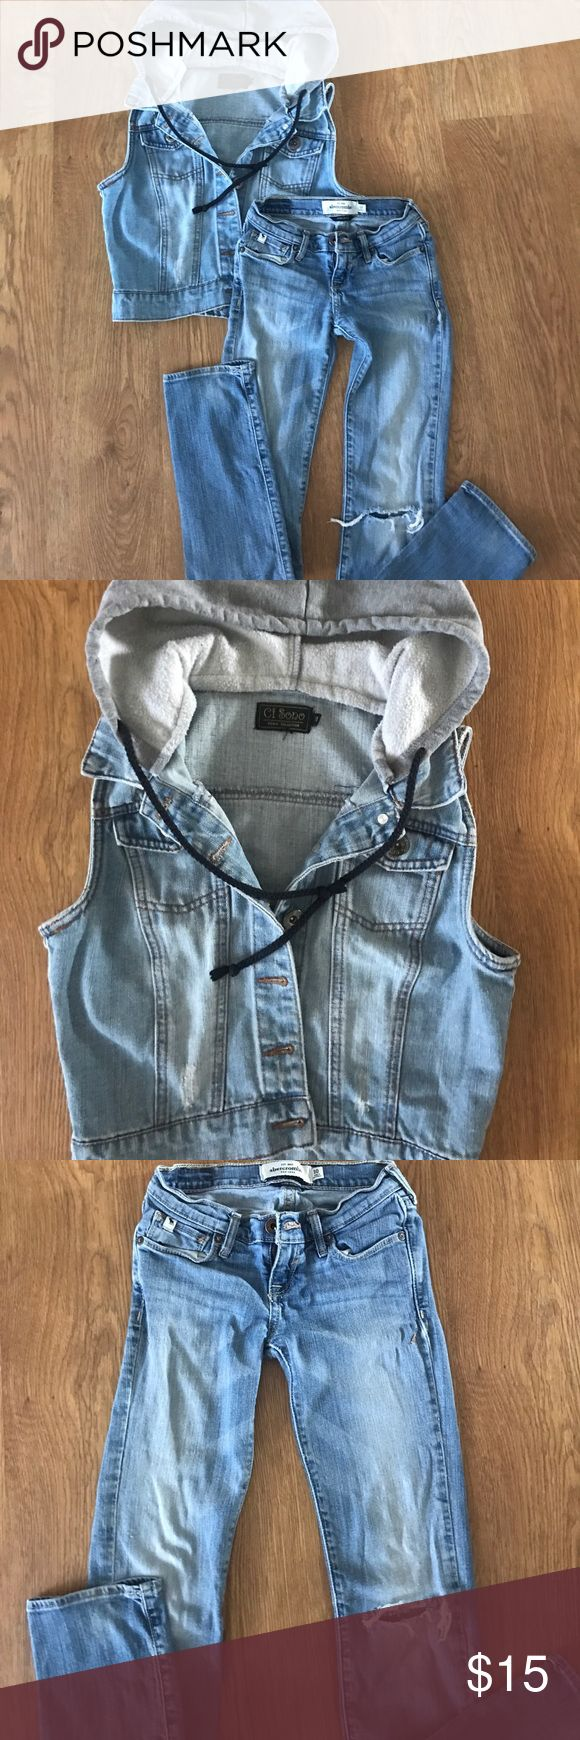 Size 10 girl's jean vest with Abercrombie  jeans Great condition size 10 Abercrombie girl's distressed jeans.  With a distressed jean hoodie size 10 abercrombie kids Matching Sets